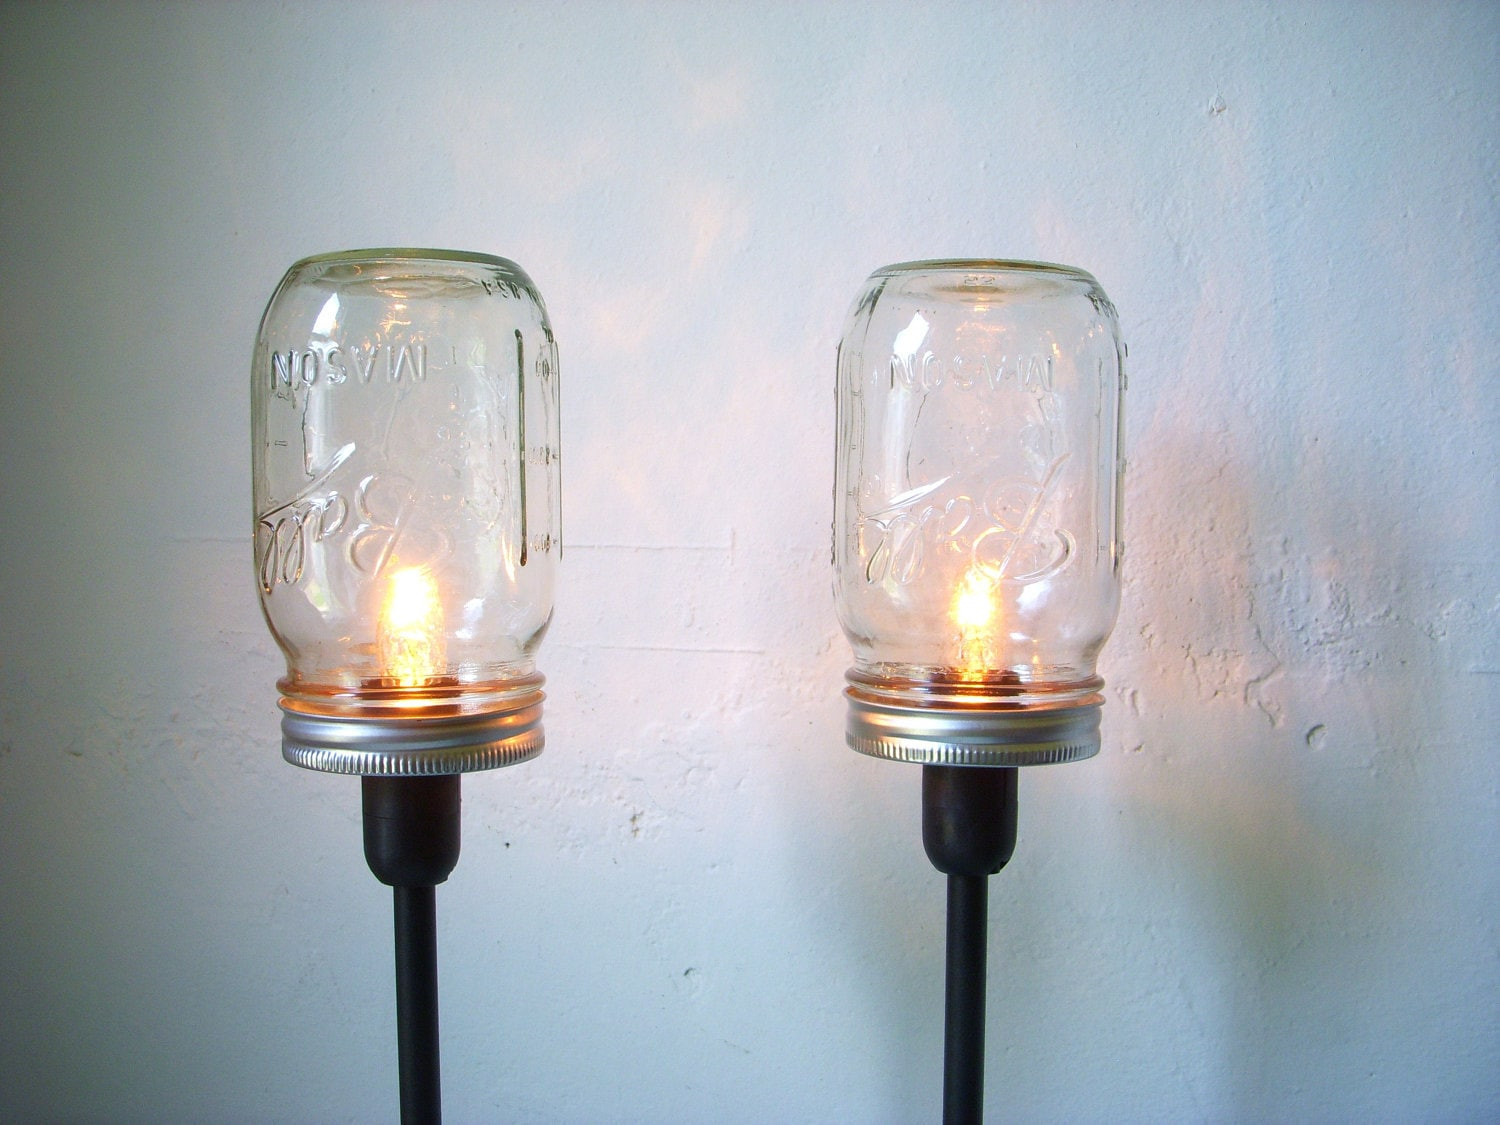 Lighting Fixtures 2 Mason Jar Table Lamps Upcycled Lighting Fixtures Mason Jar Lights Industrial Modern Contemporary Home Decor Bootsngus Lamp Design